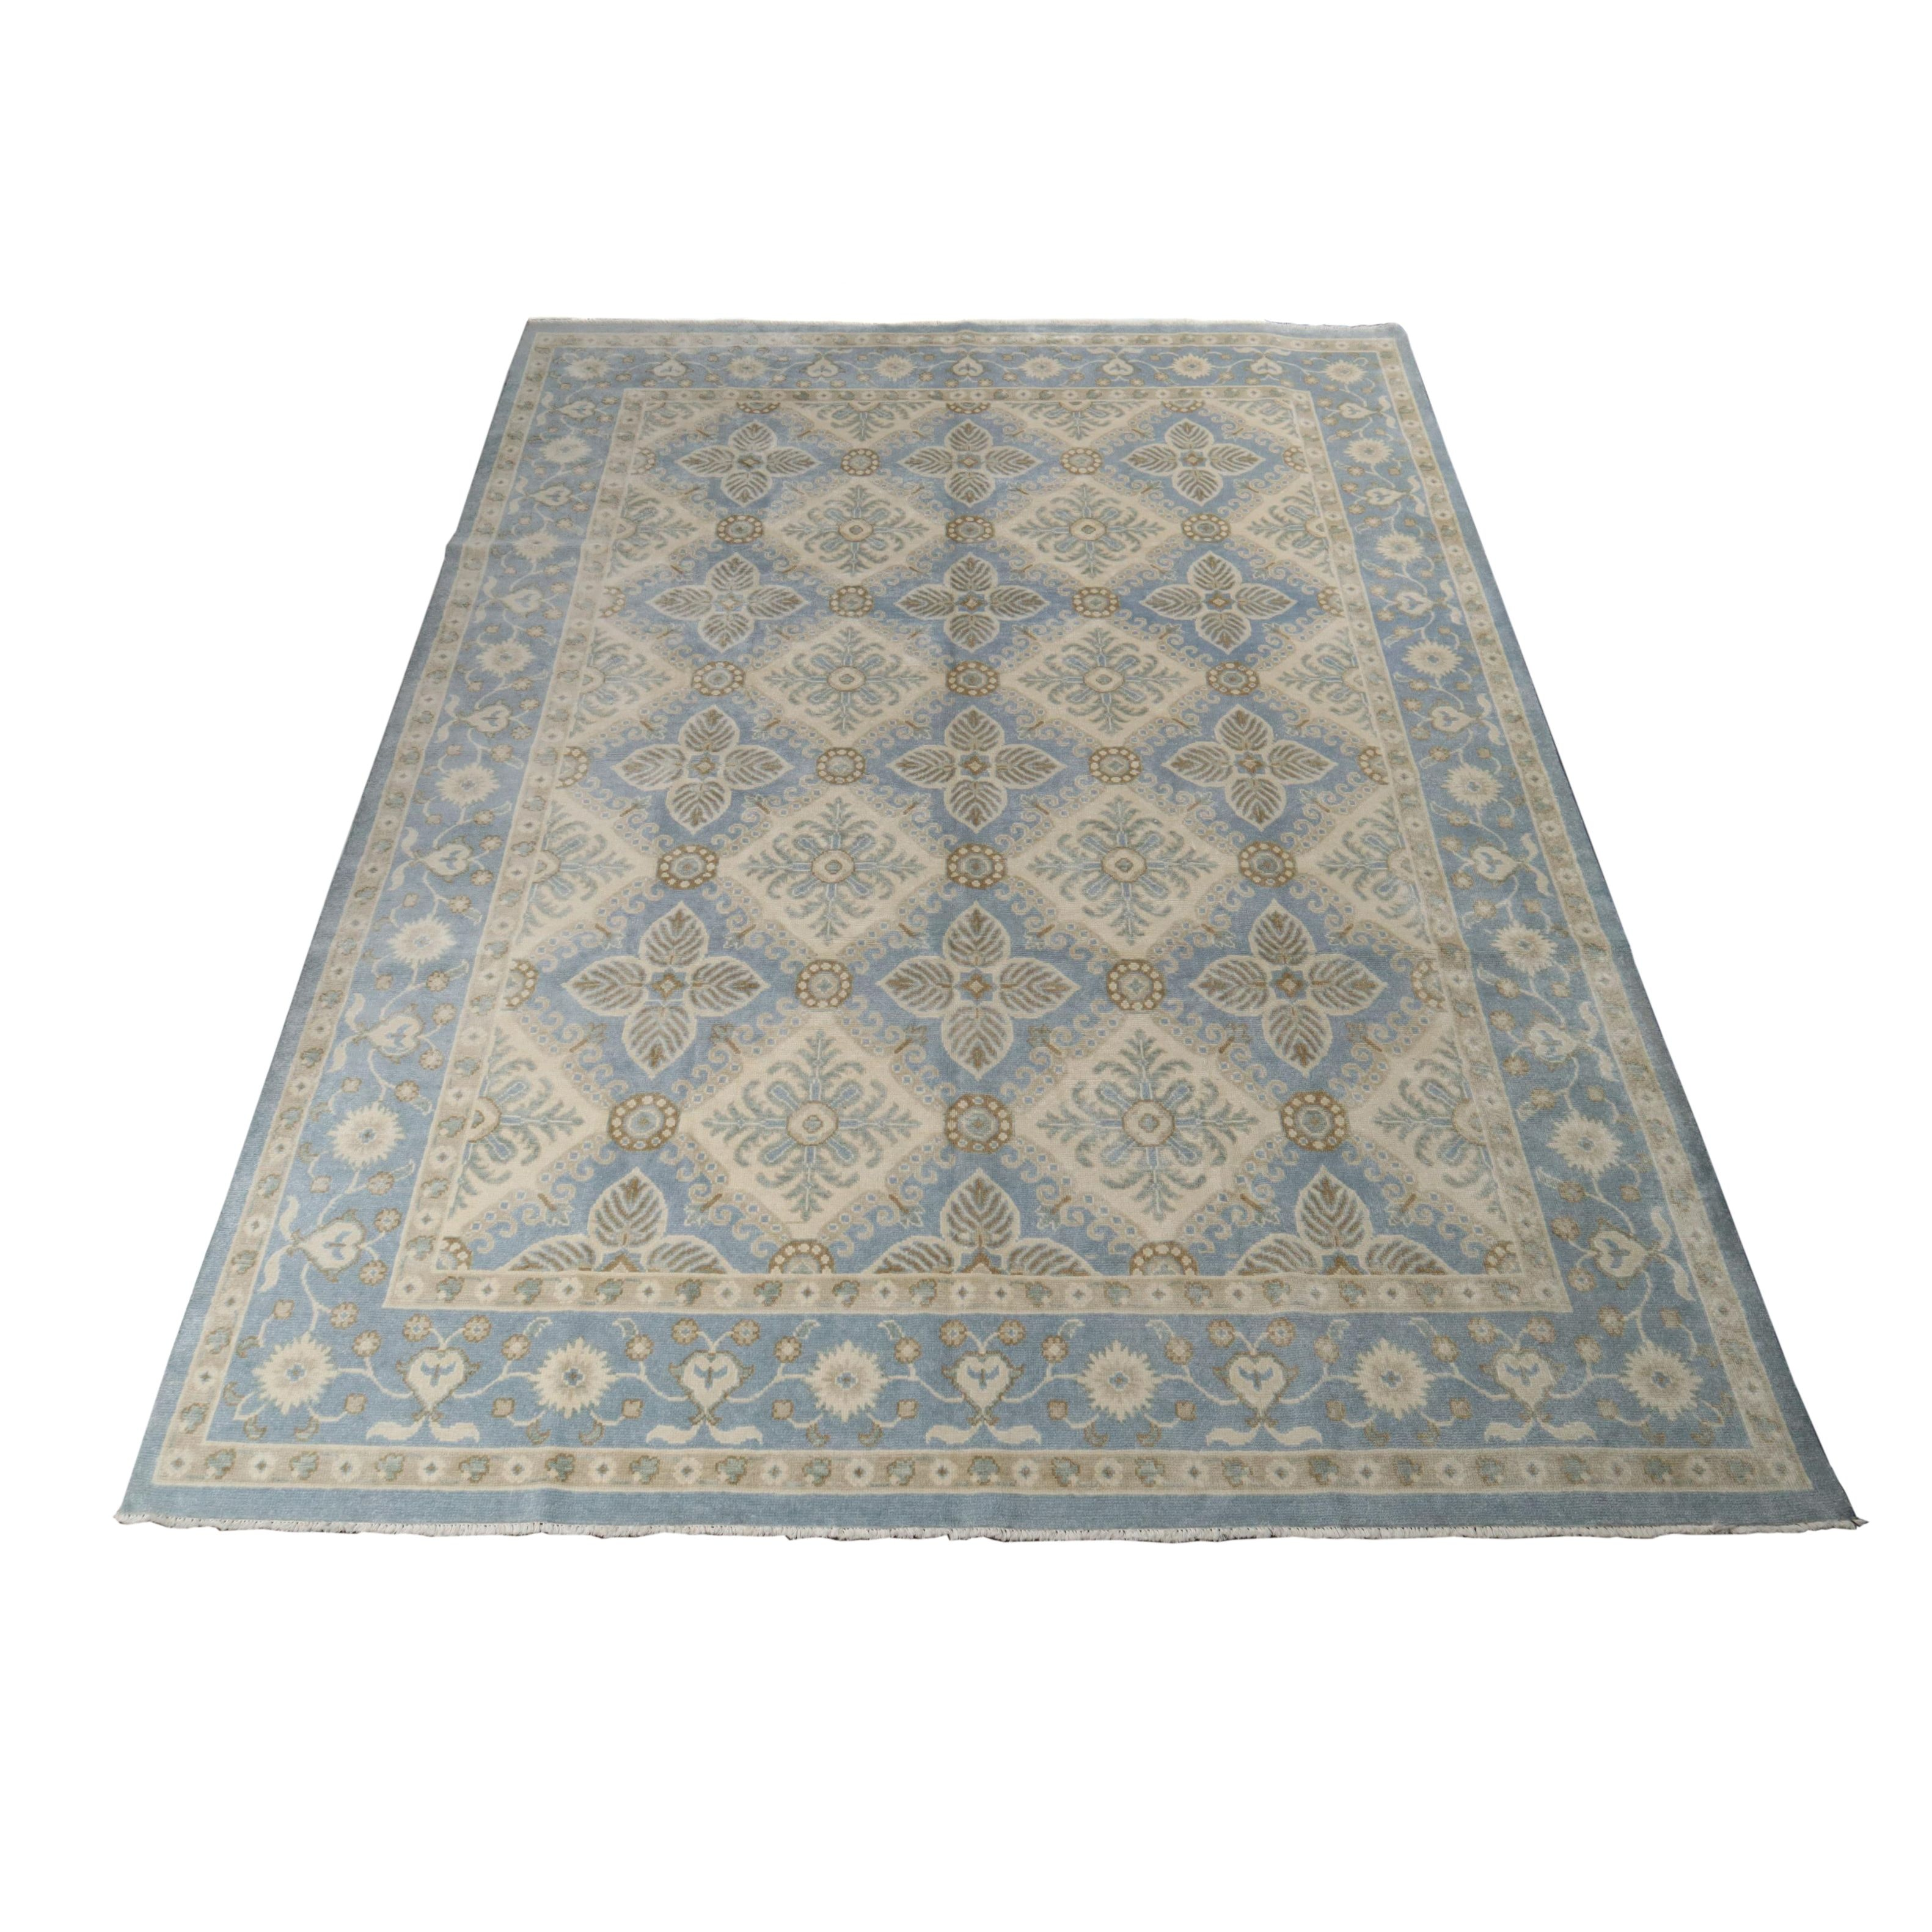 9.2' x 12.1' Hand-Knotted Indo-Persian Tabriz Rug